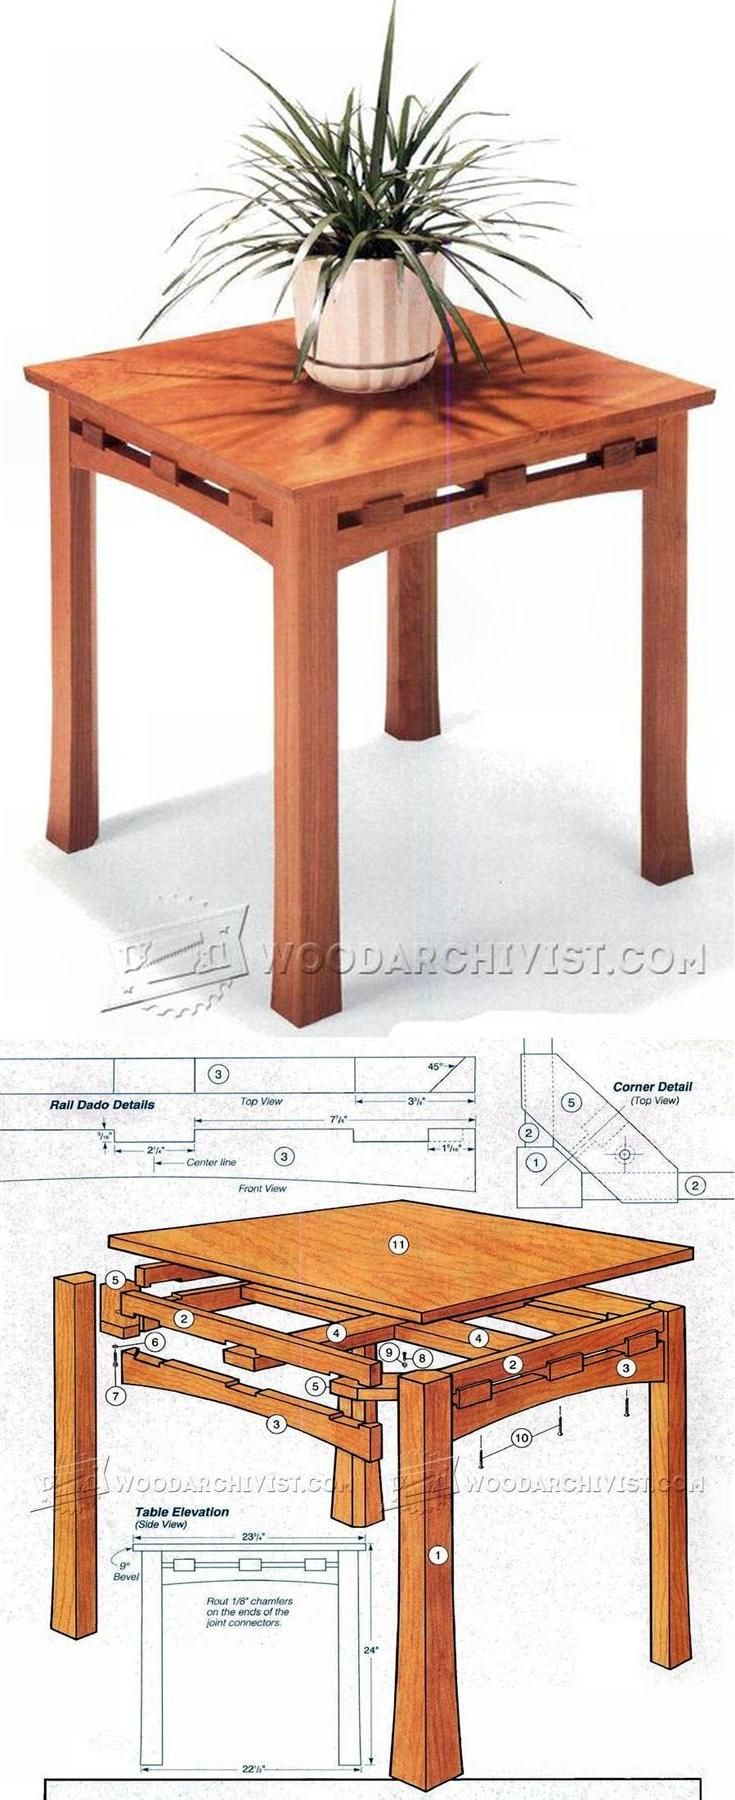 25 best ideas about craftsman 10 table saw on pinterest for Craftsman furniture plans